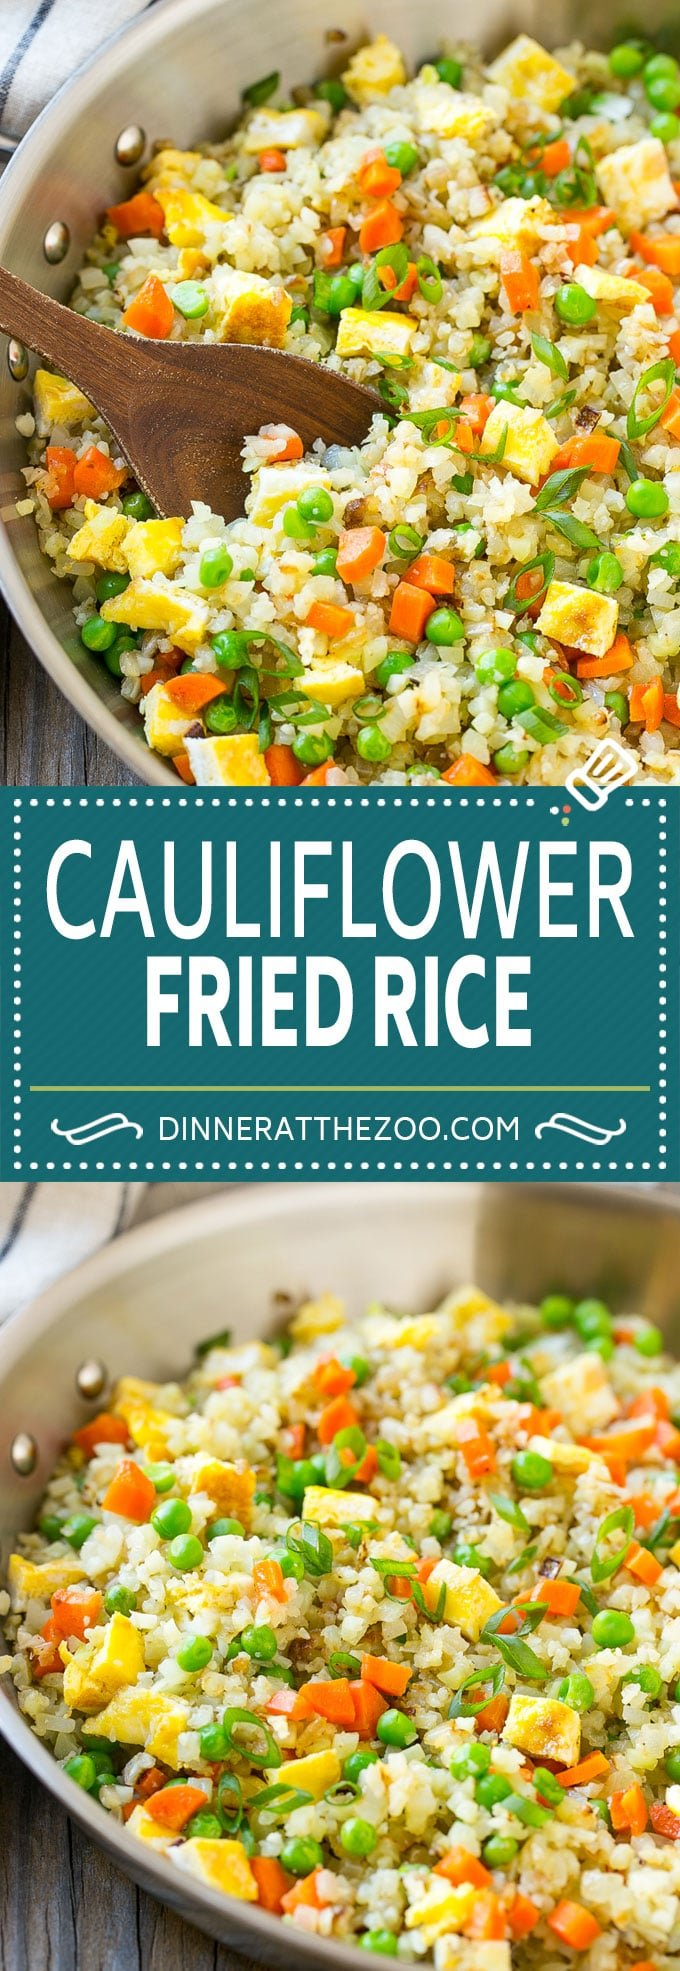 Cauliflower Fried Rice Recipe | Cauliflower Rice #rice #cauliflower #lowcarb #dinner #keto #dinneratthezoo